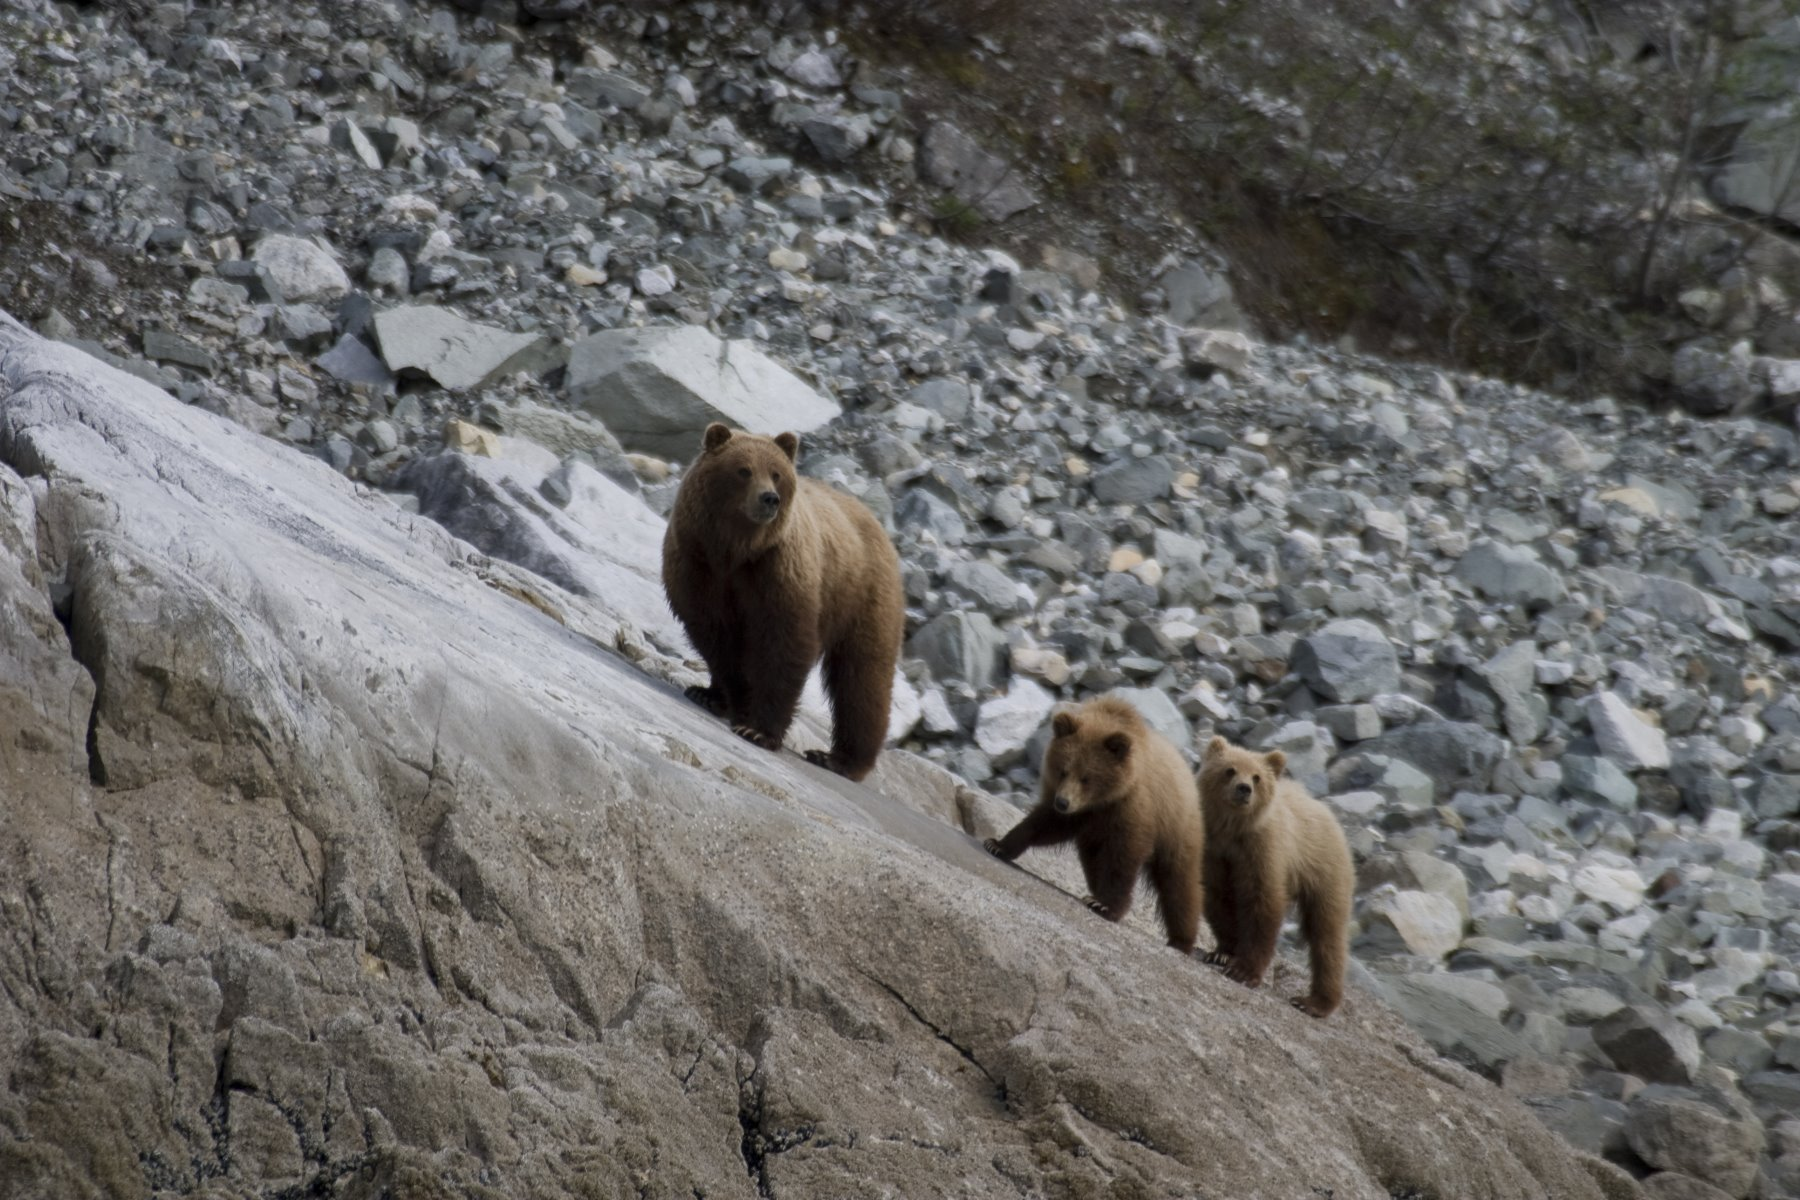 Brown bear and her two cubs near the rich intertidal zone.